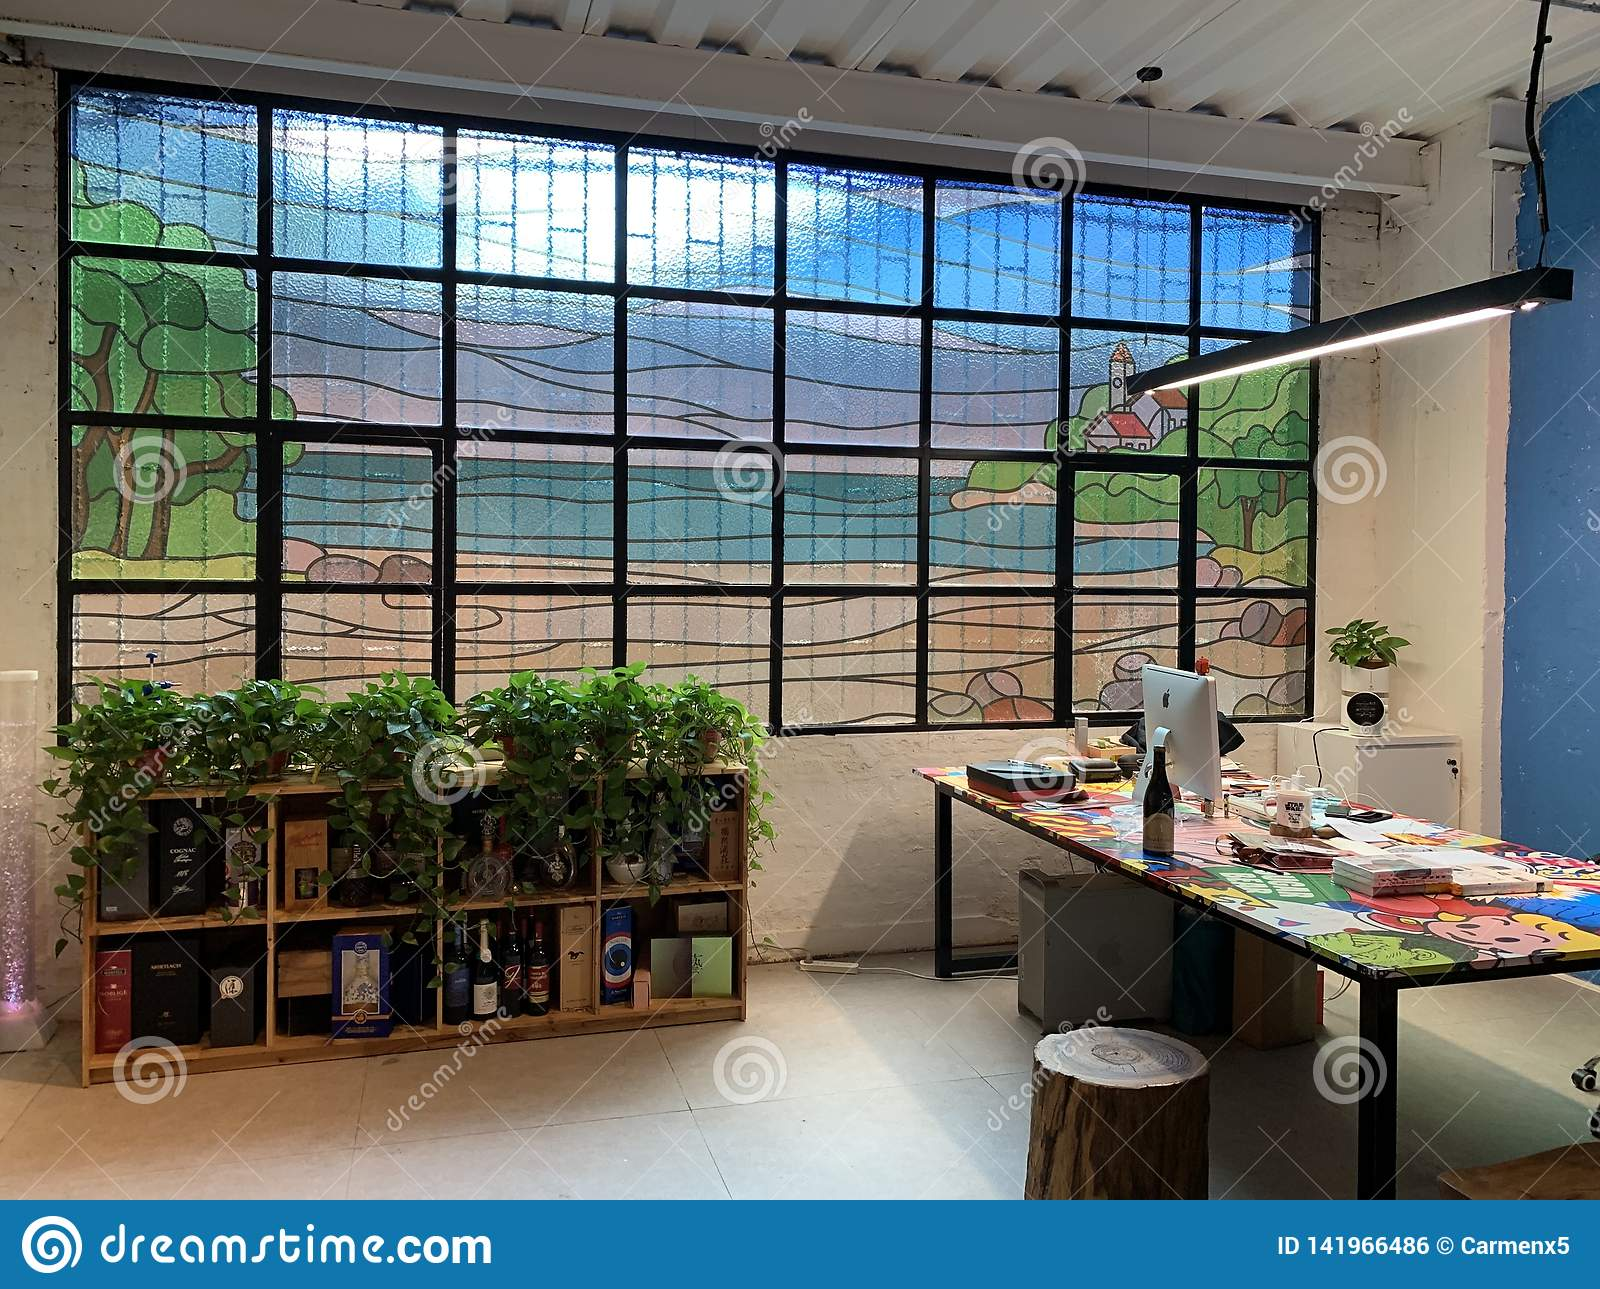 2019 Guangzhou shared office design, color painting glass windows